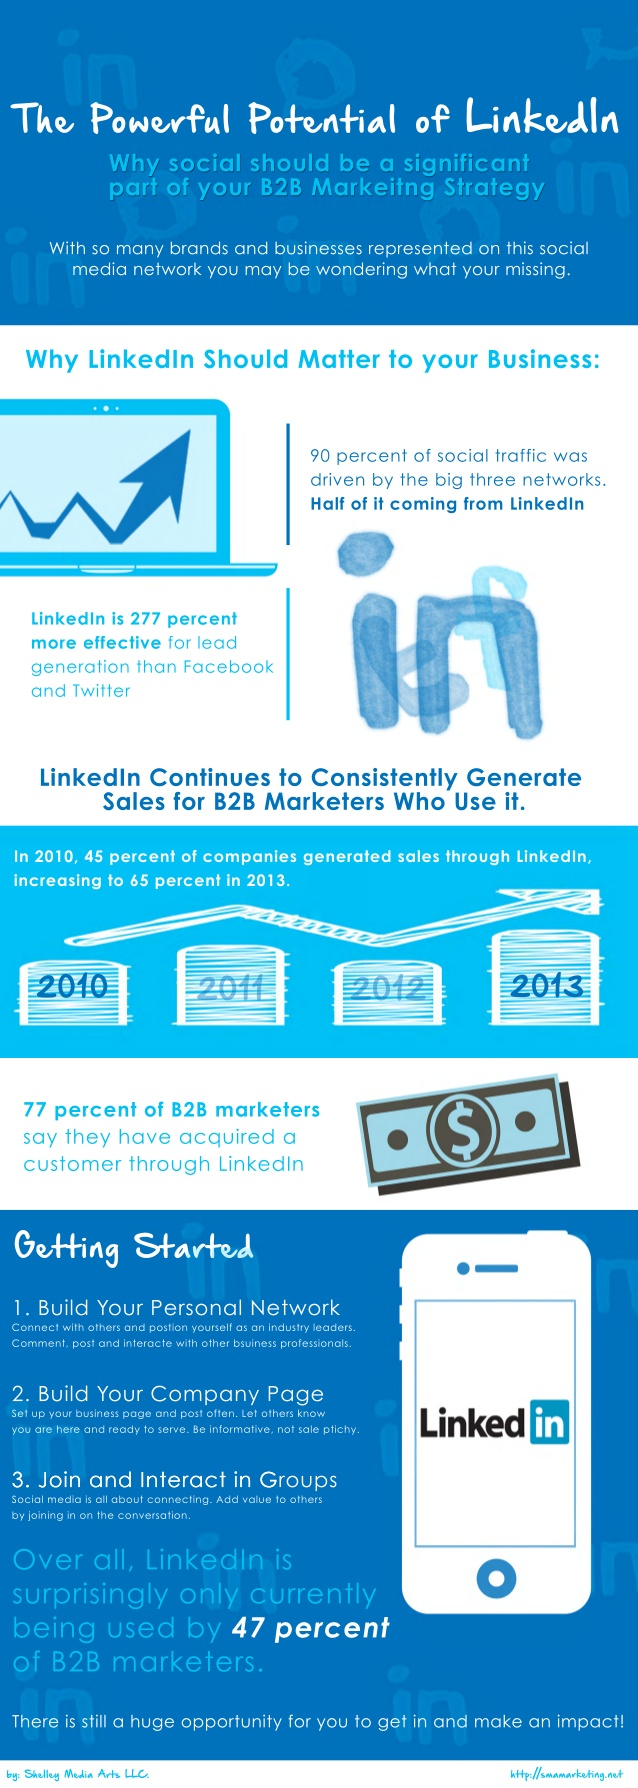 the-powerful-potential-of-deveolping-a-linkedin-b2b-marketing-strategy-1-638-1.jpg